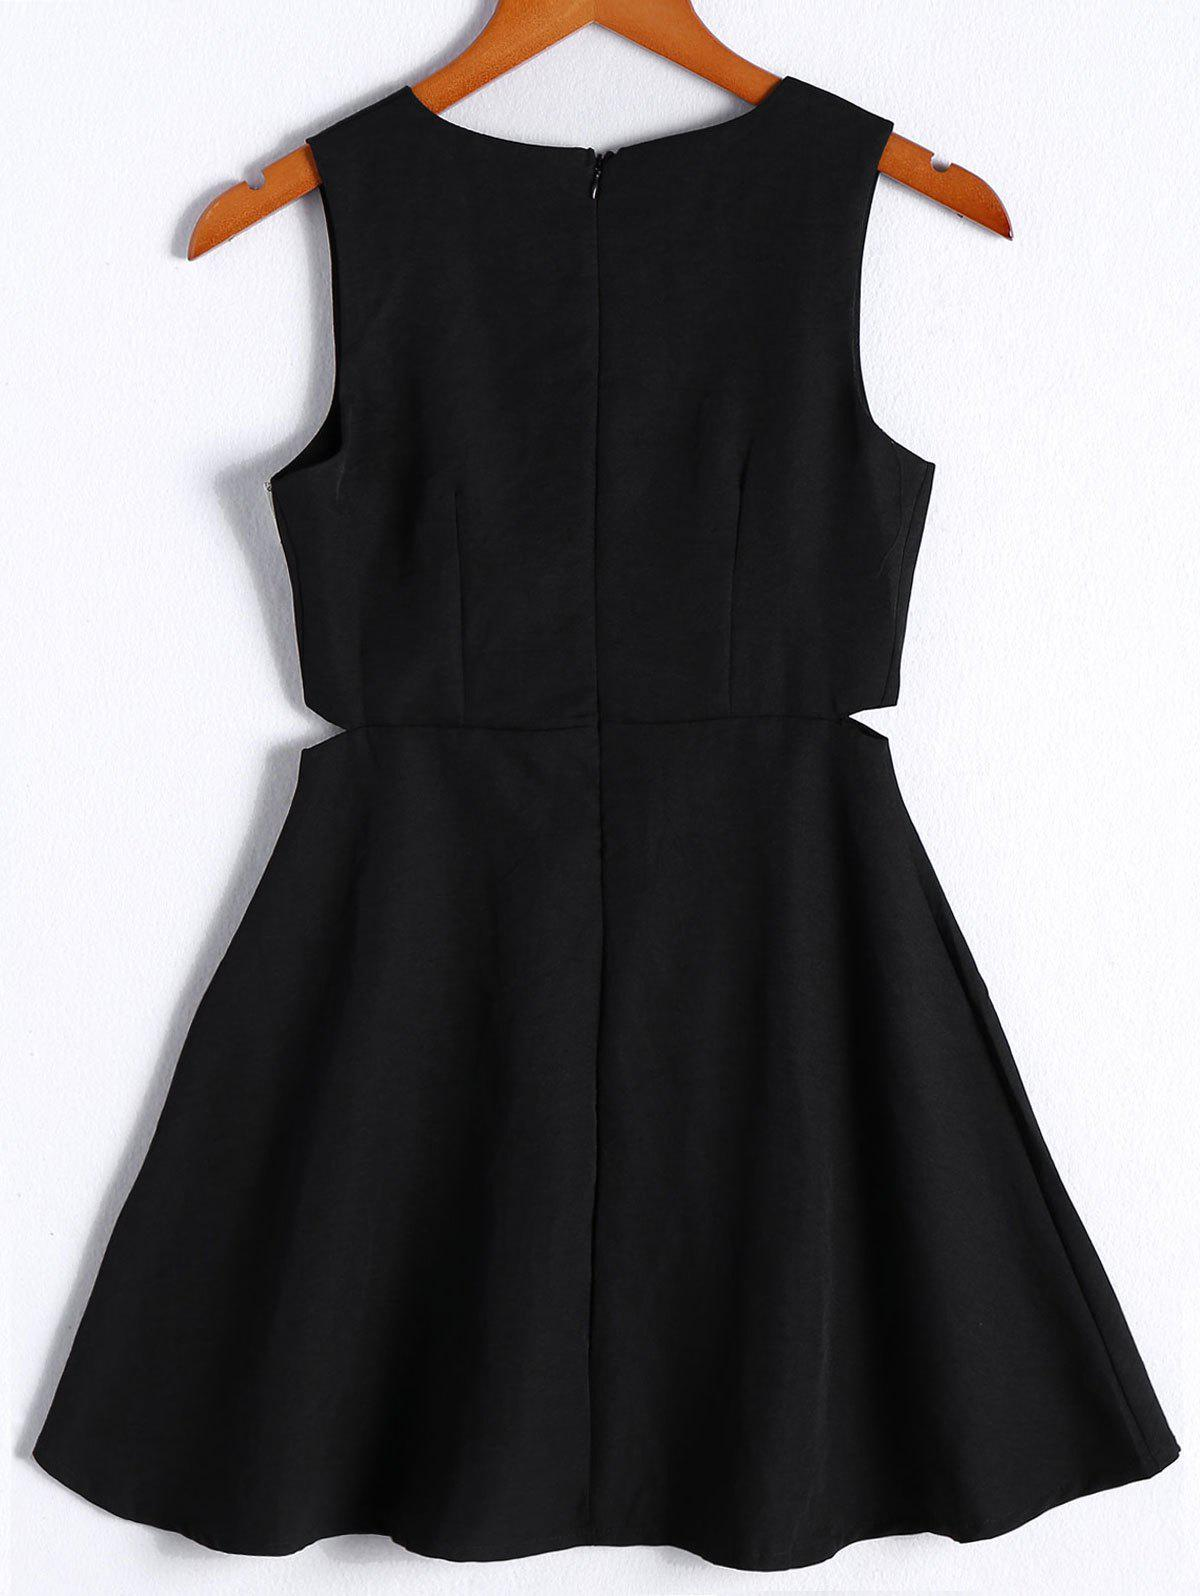 Simple Women's Solid Color Scoop Neck Cut Out Sleeveless Flare Dress - BLACK M